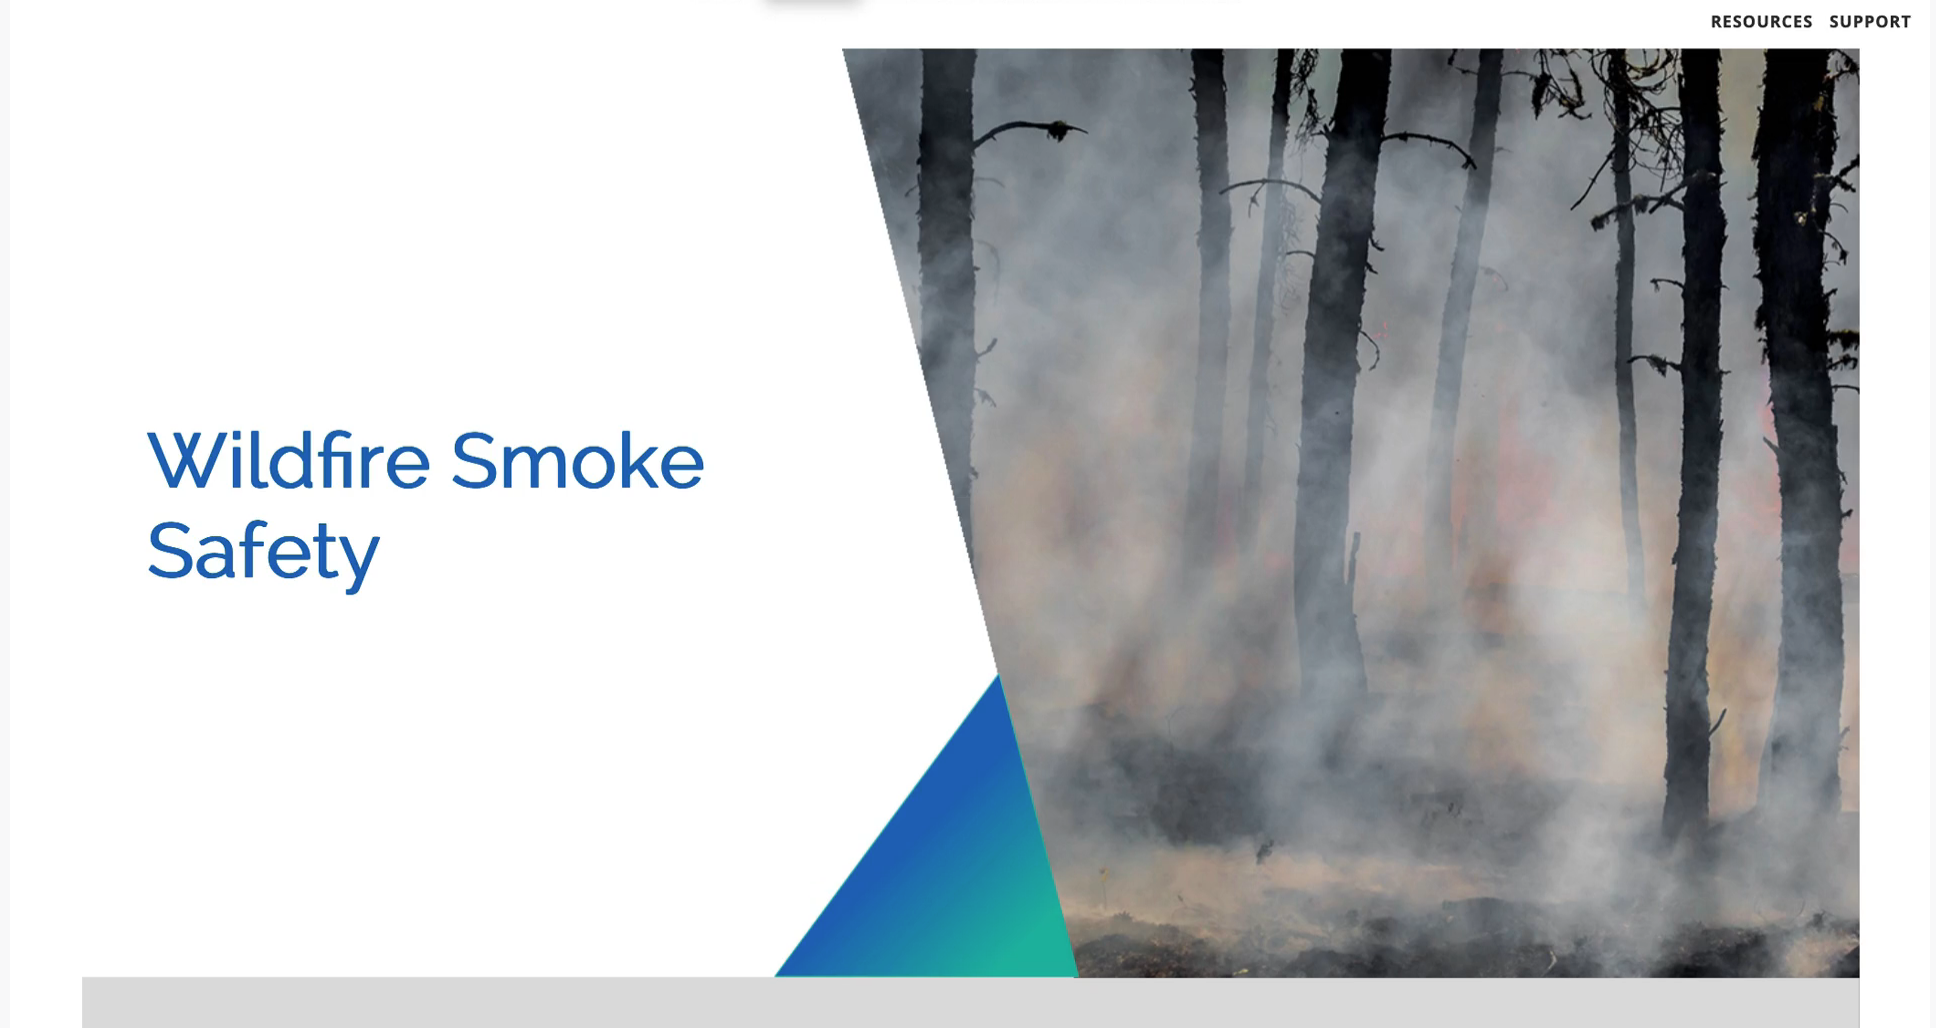 Video - Wildfire Smoke Safety Course Screen Shot